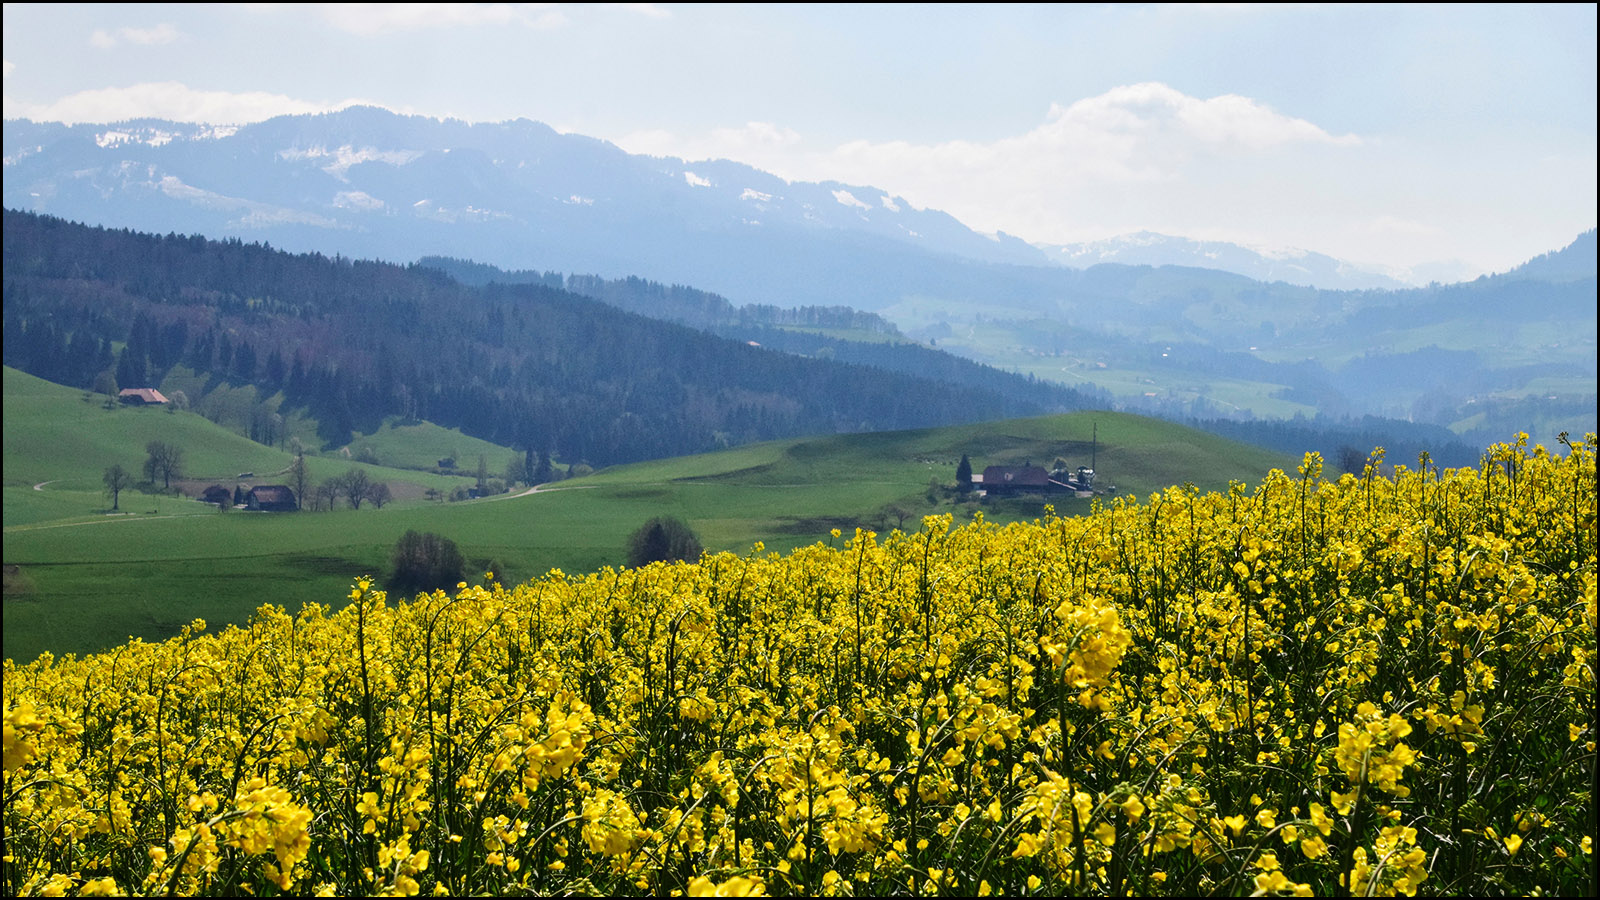 enjoy a photo of what it looks like walking through a typical swiss field (notice sunlight!) - (c) mark somple 2019